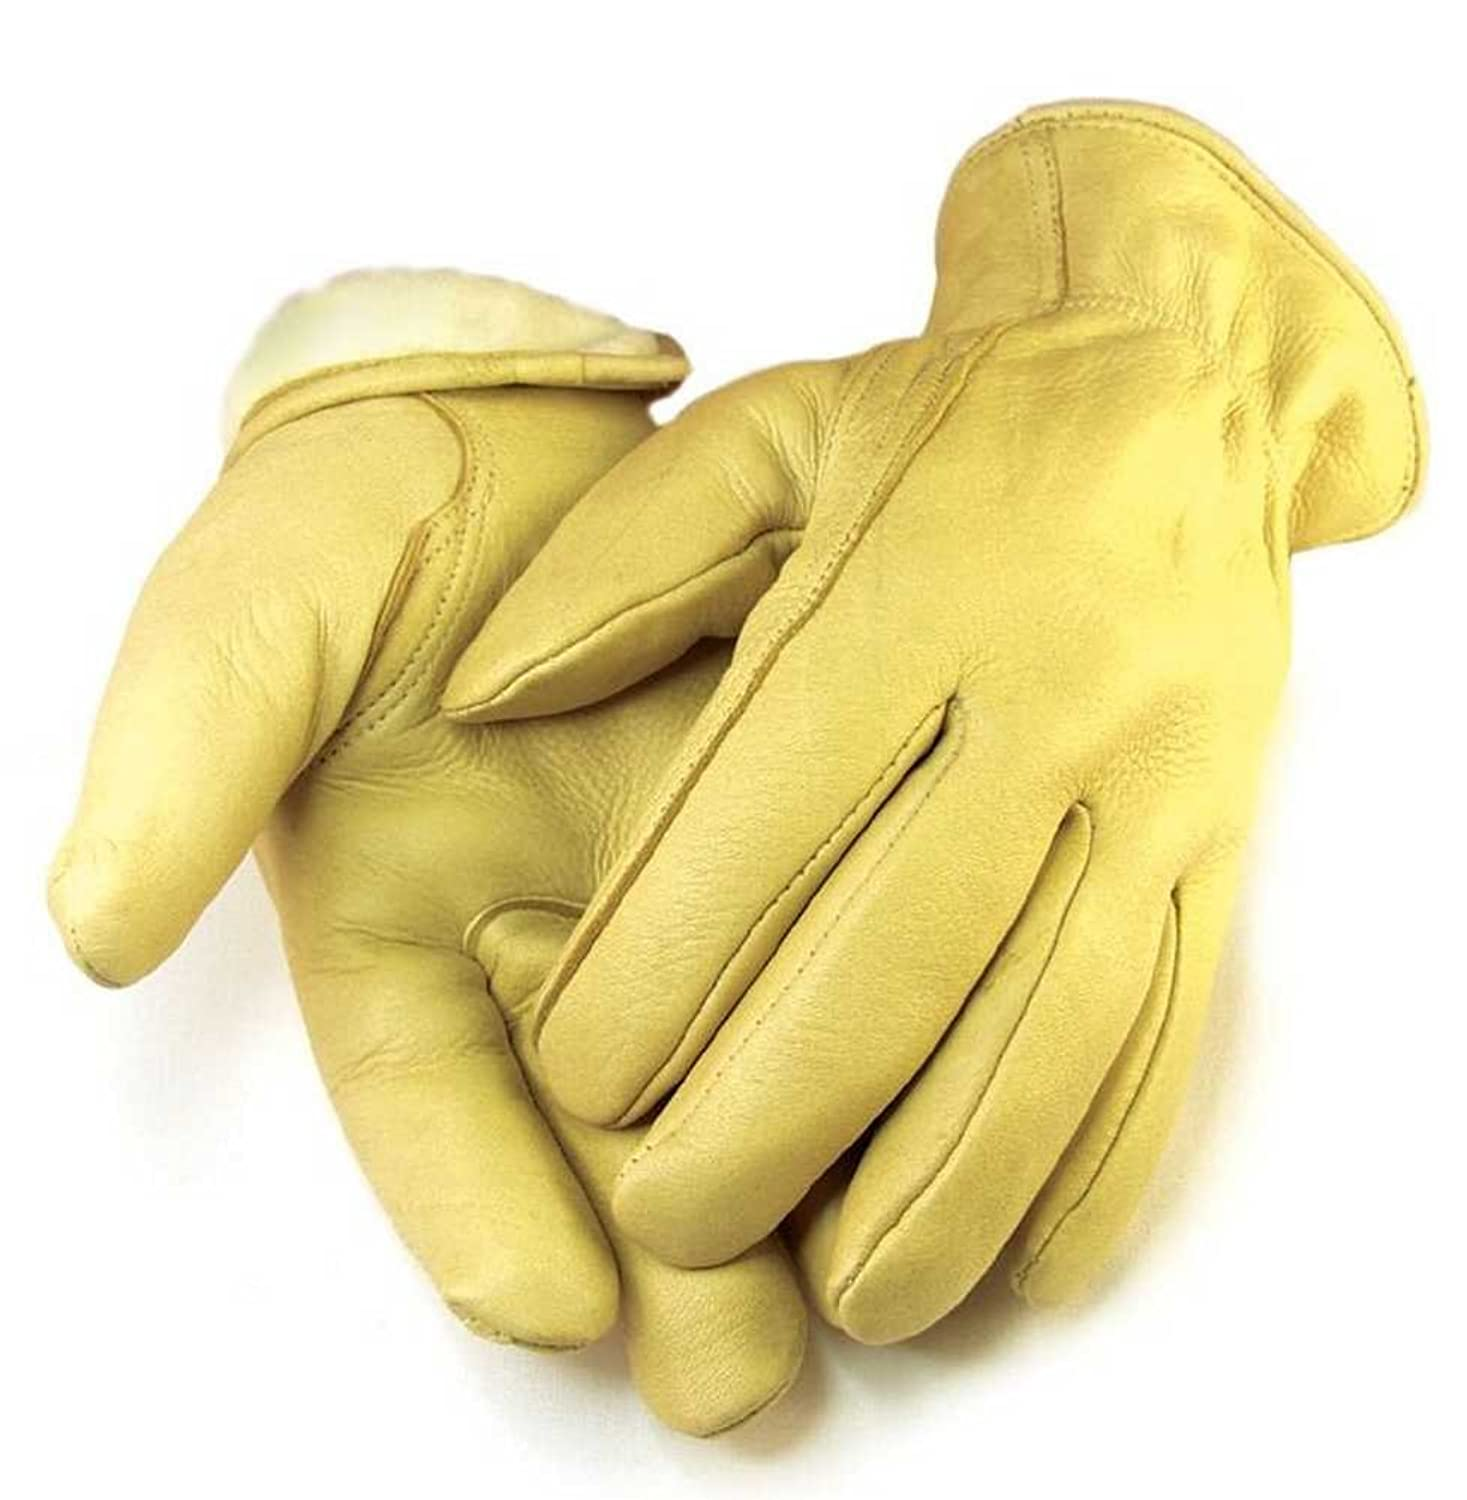 Leather work gloves with thinsulate lining - Northstar Mens Full Grain Tan Deerskin Gloves Lined 40 Gram 3m Thinsulate 013t At Amazon Men S Clothing Store